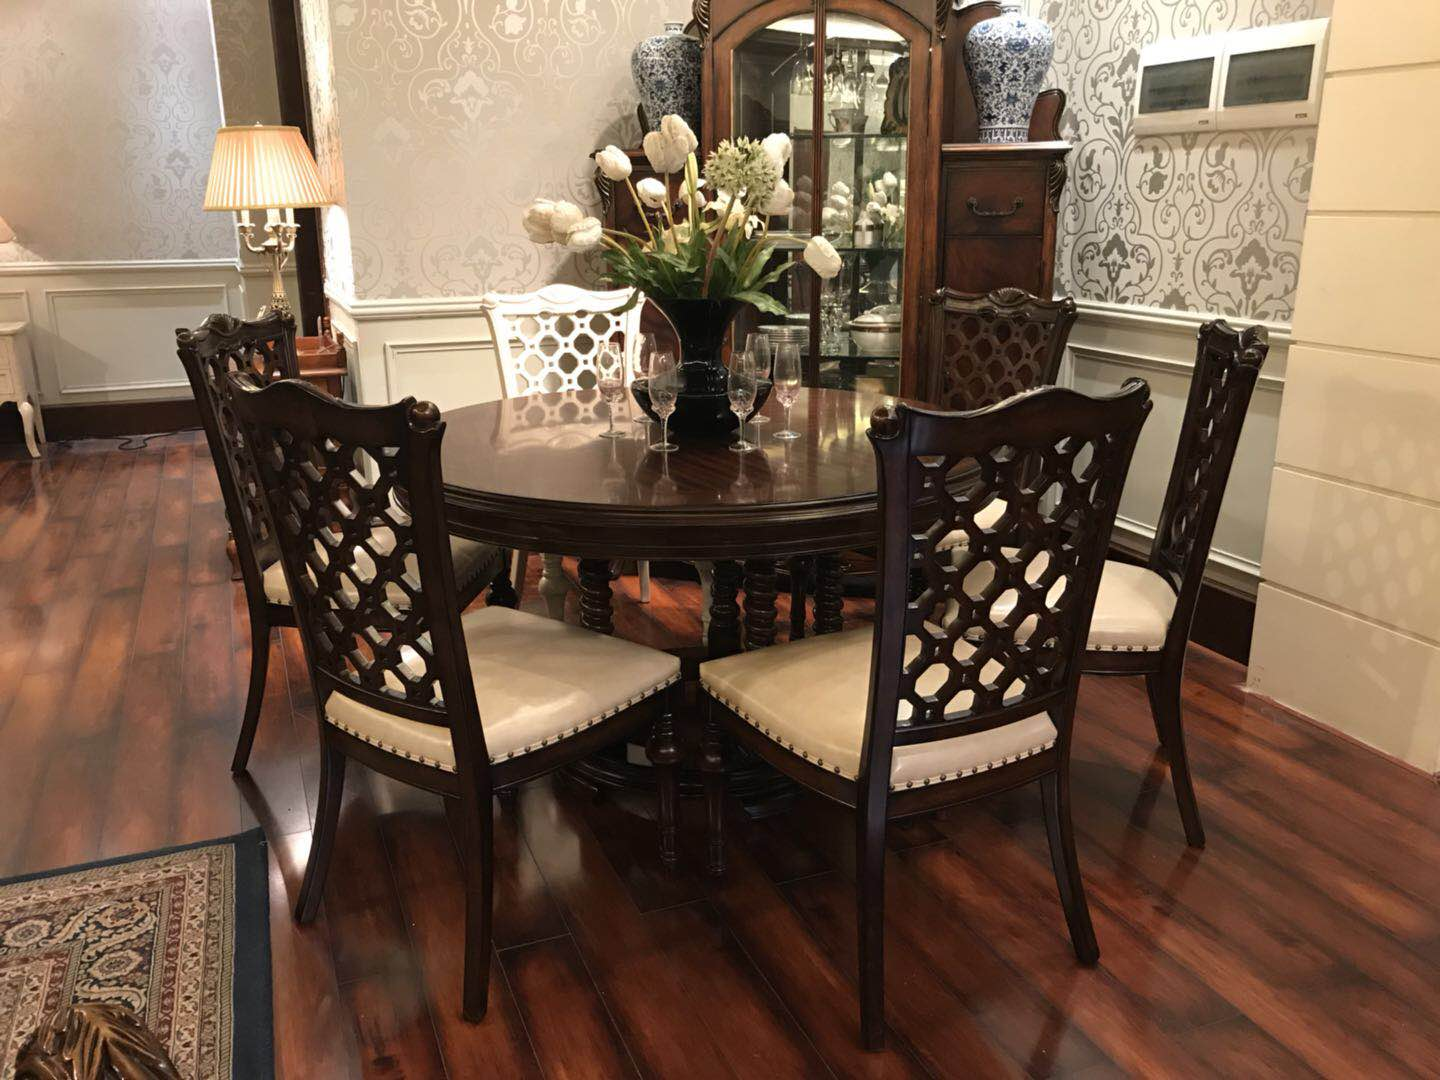 Goodwin furniture Leather dining modern chair with round and square dining table GF132 GF133